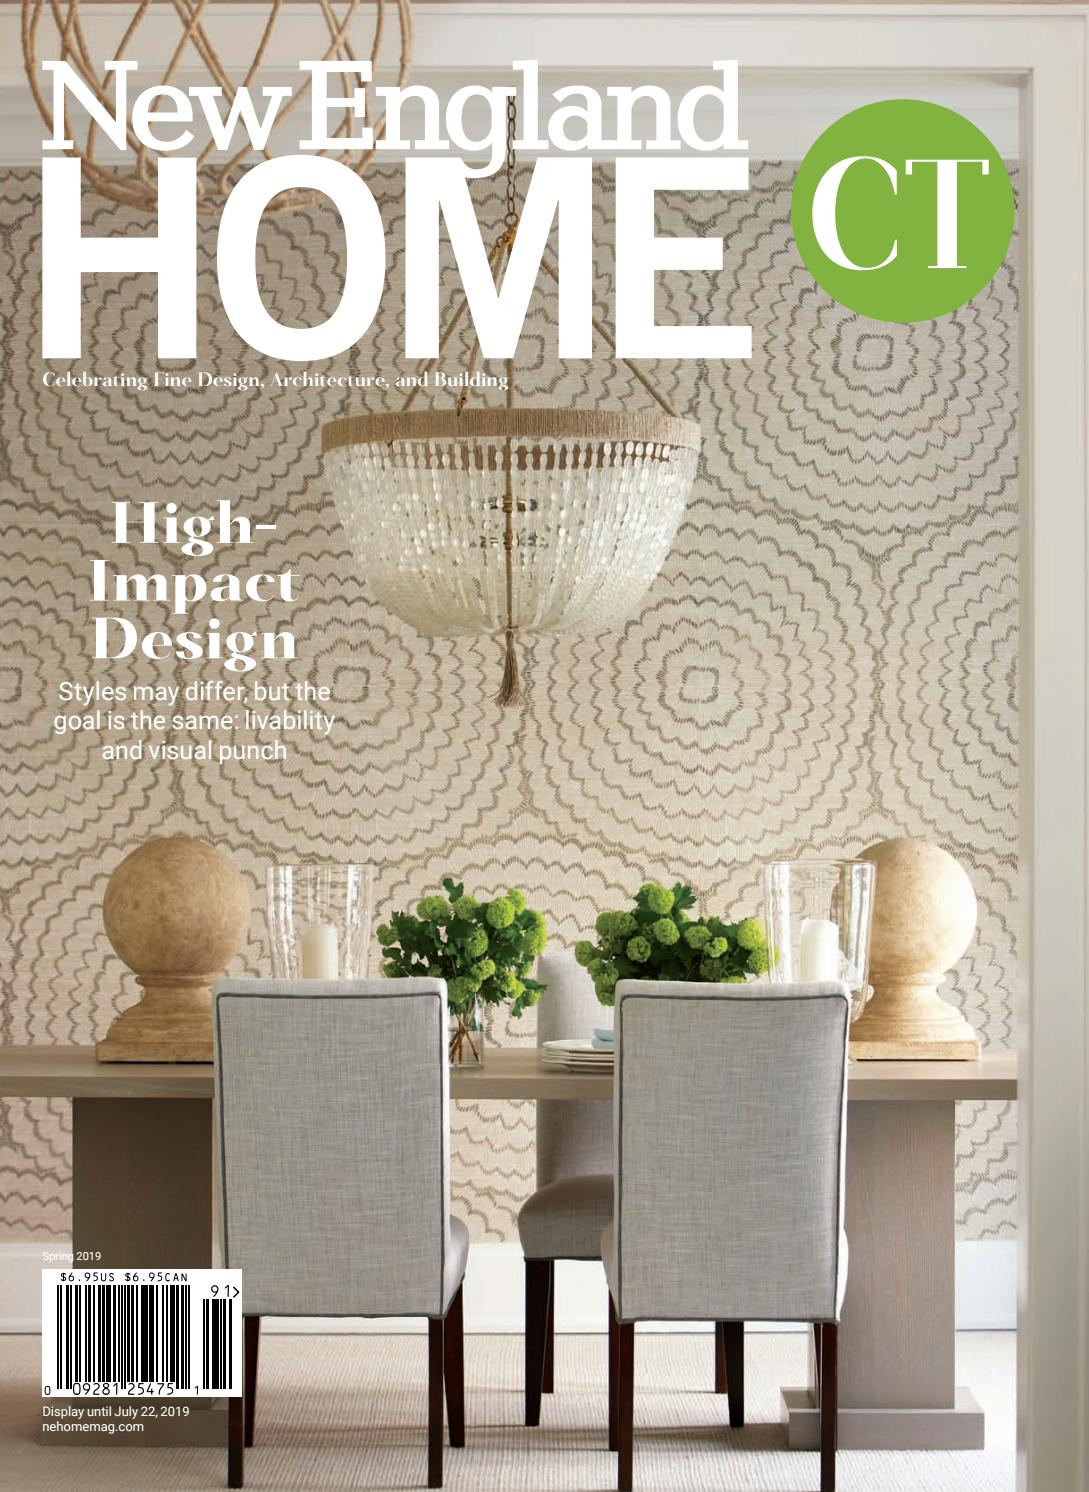 decorative window film 2017 grasscloth wallpaper.htm new england home connecticut spring 2019 by new england home  connecticut spring 2019 by new england